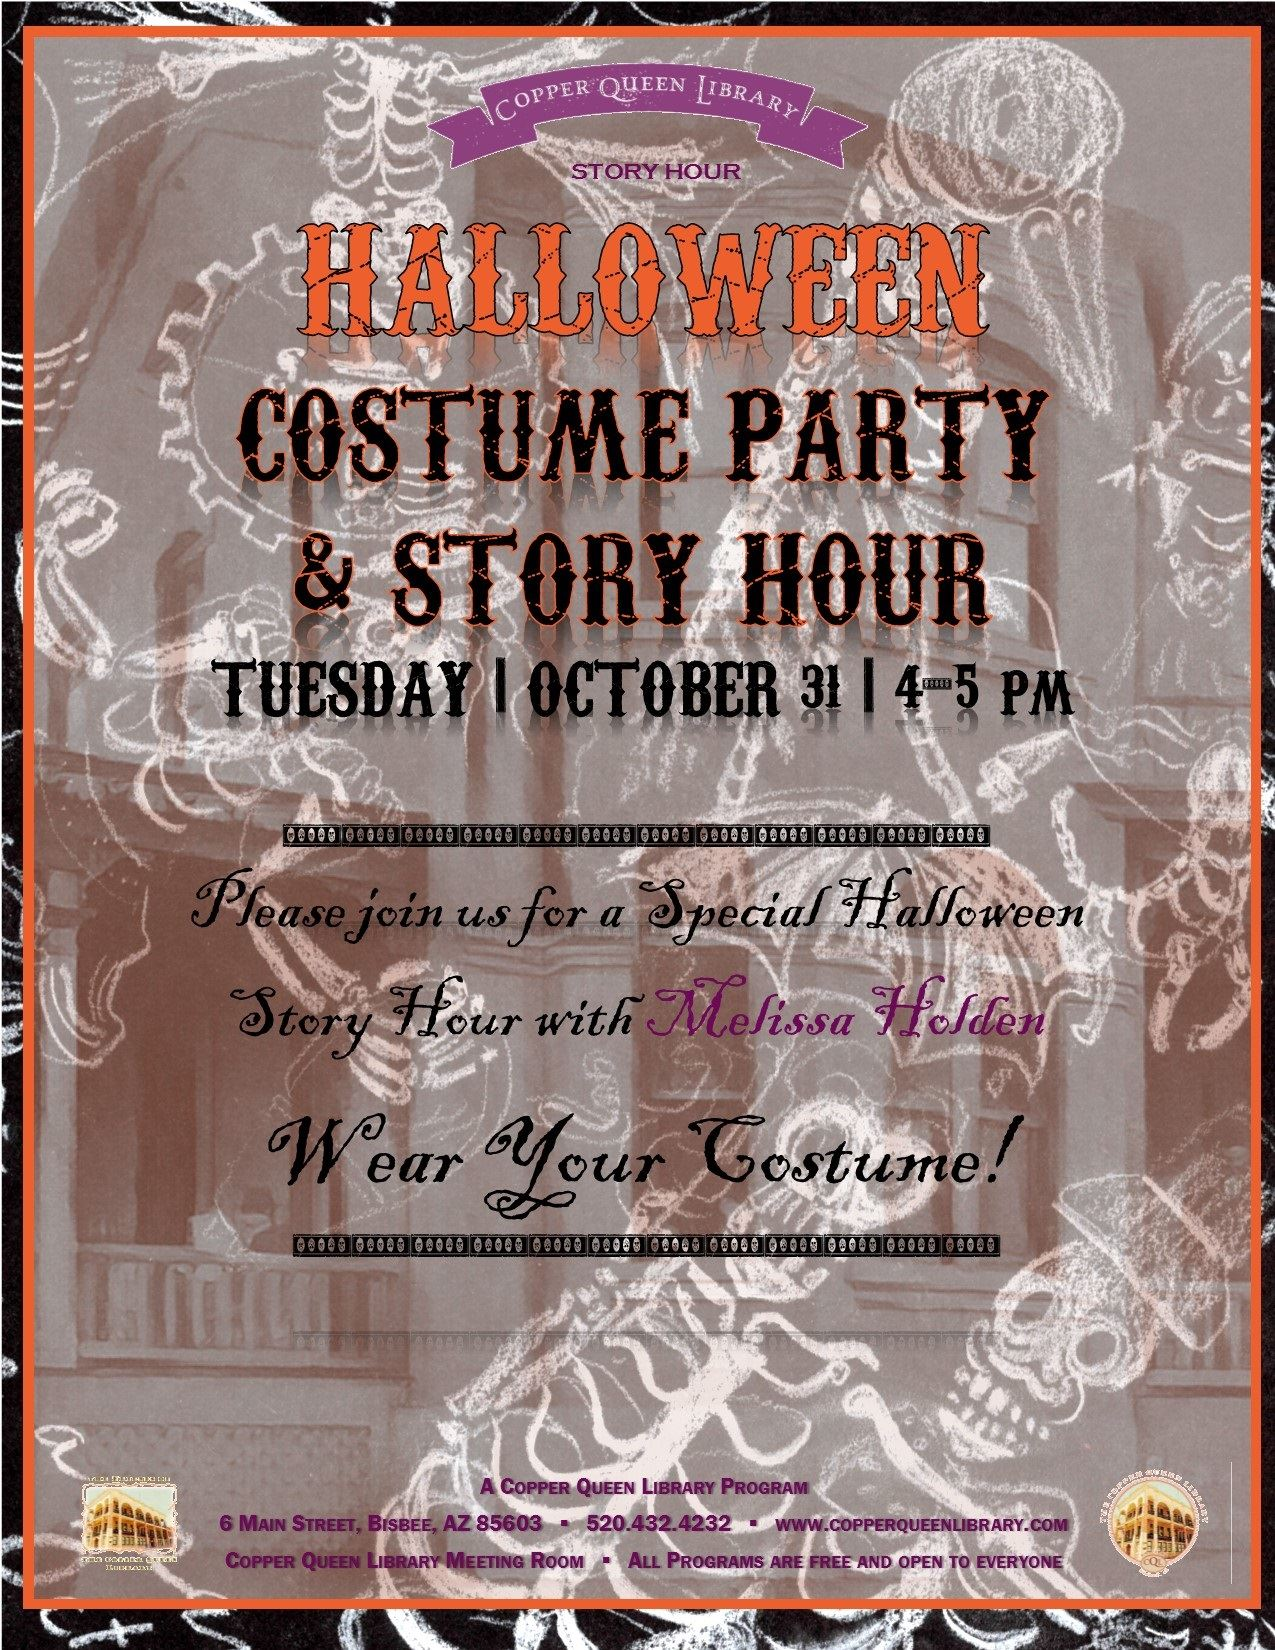 HALLOWEEN SPECIAL STORY HOUR POSTER 10.31.2017 8.5 x 11 3